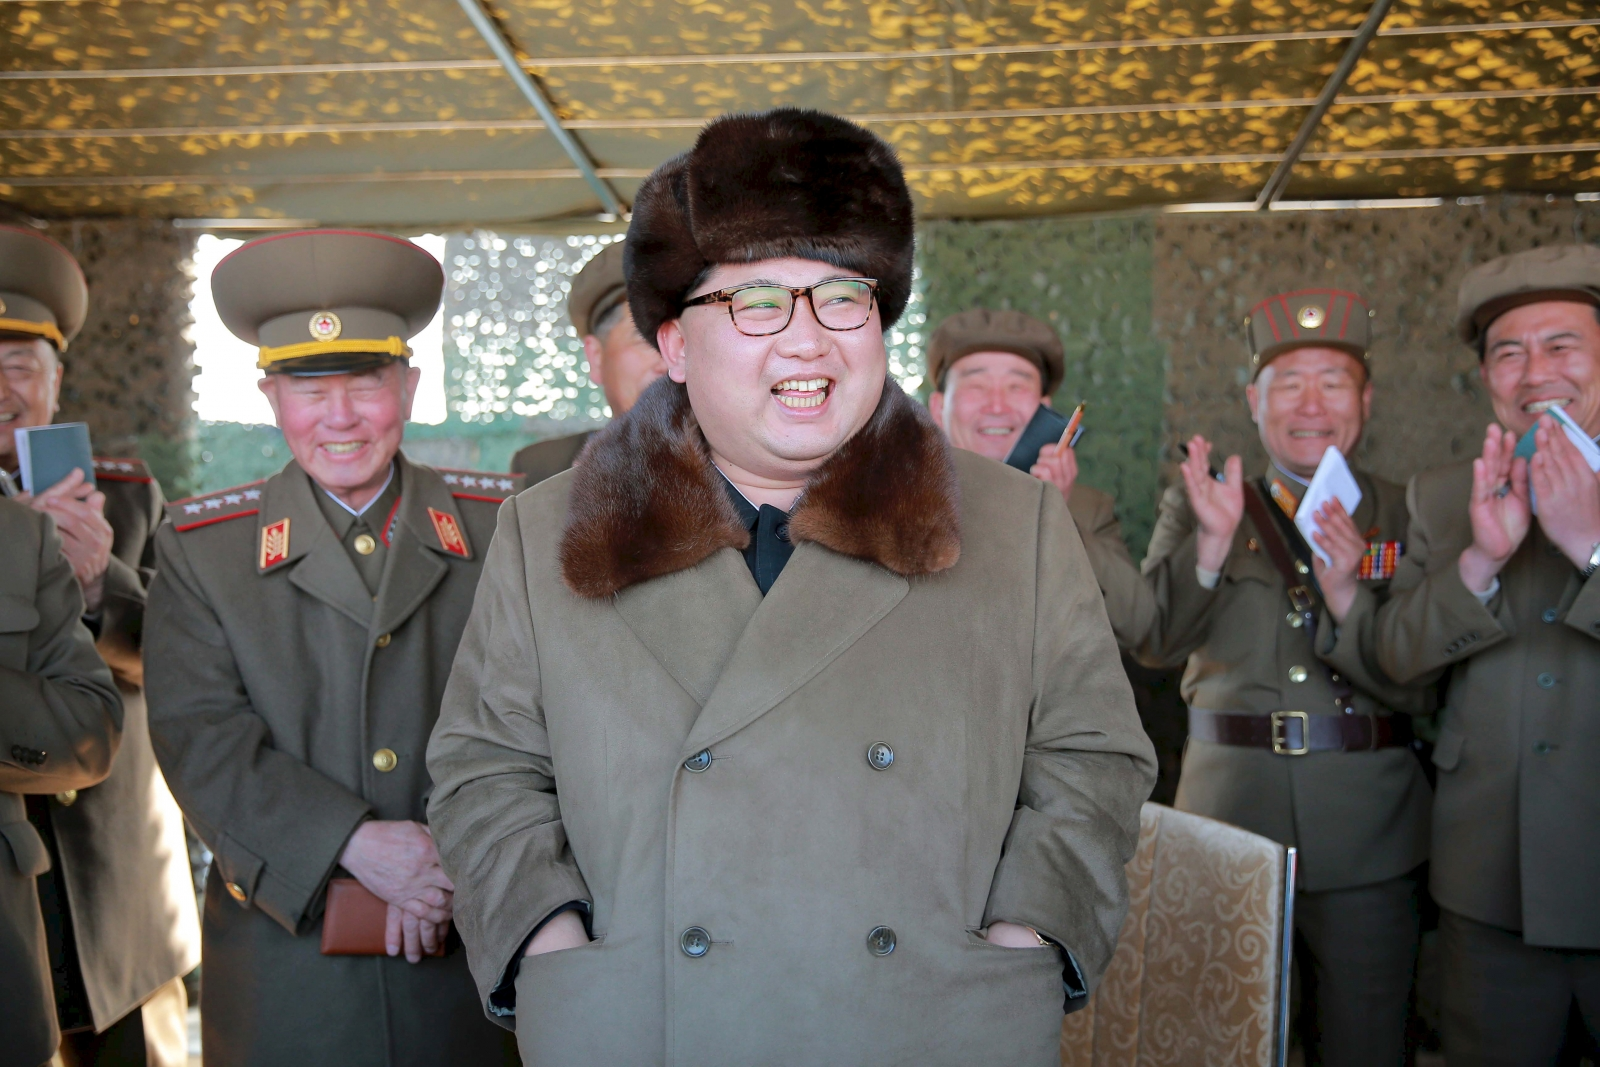 South Korea to create special military unit to eliminate Kim Jong-un if he launches nuke attack